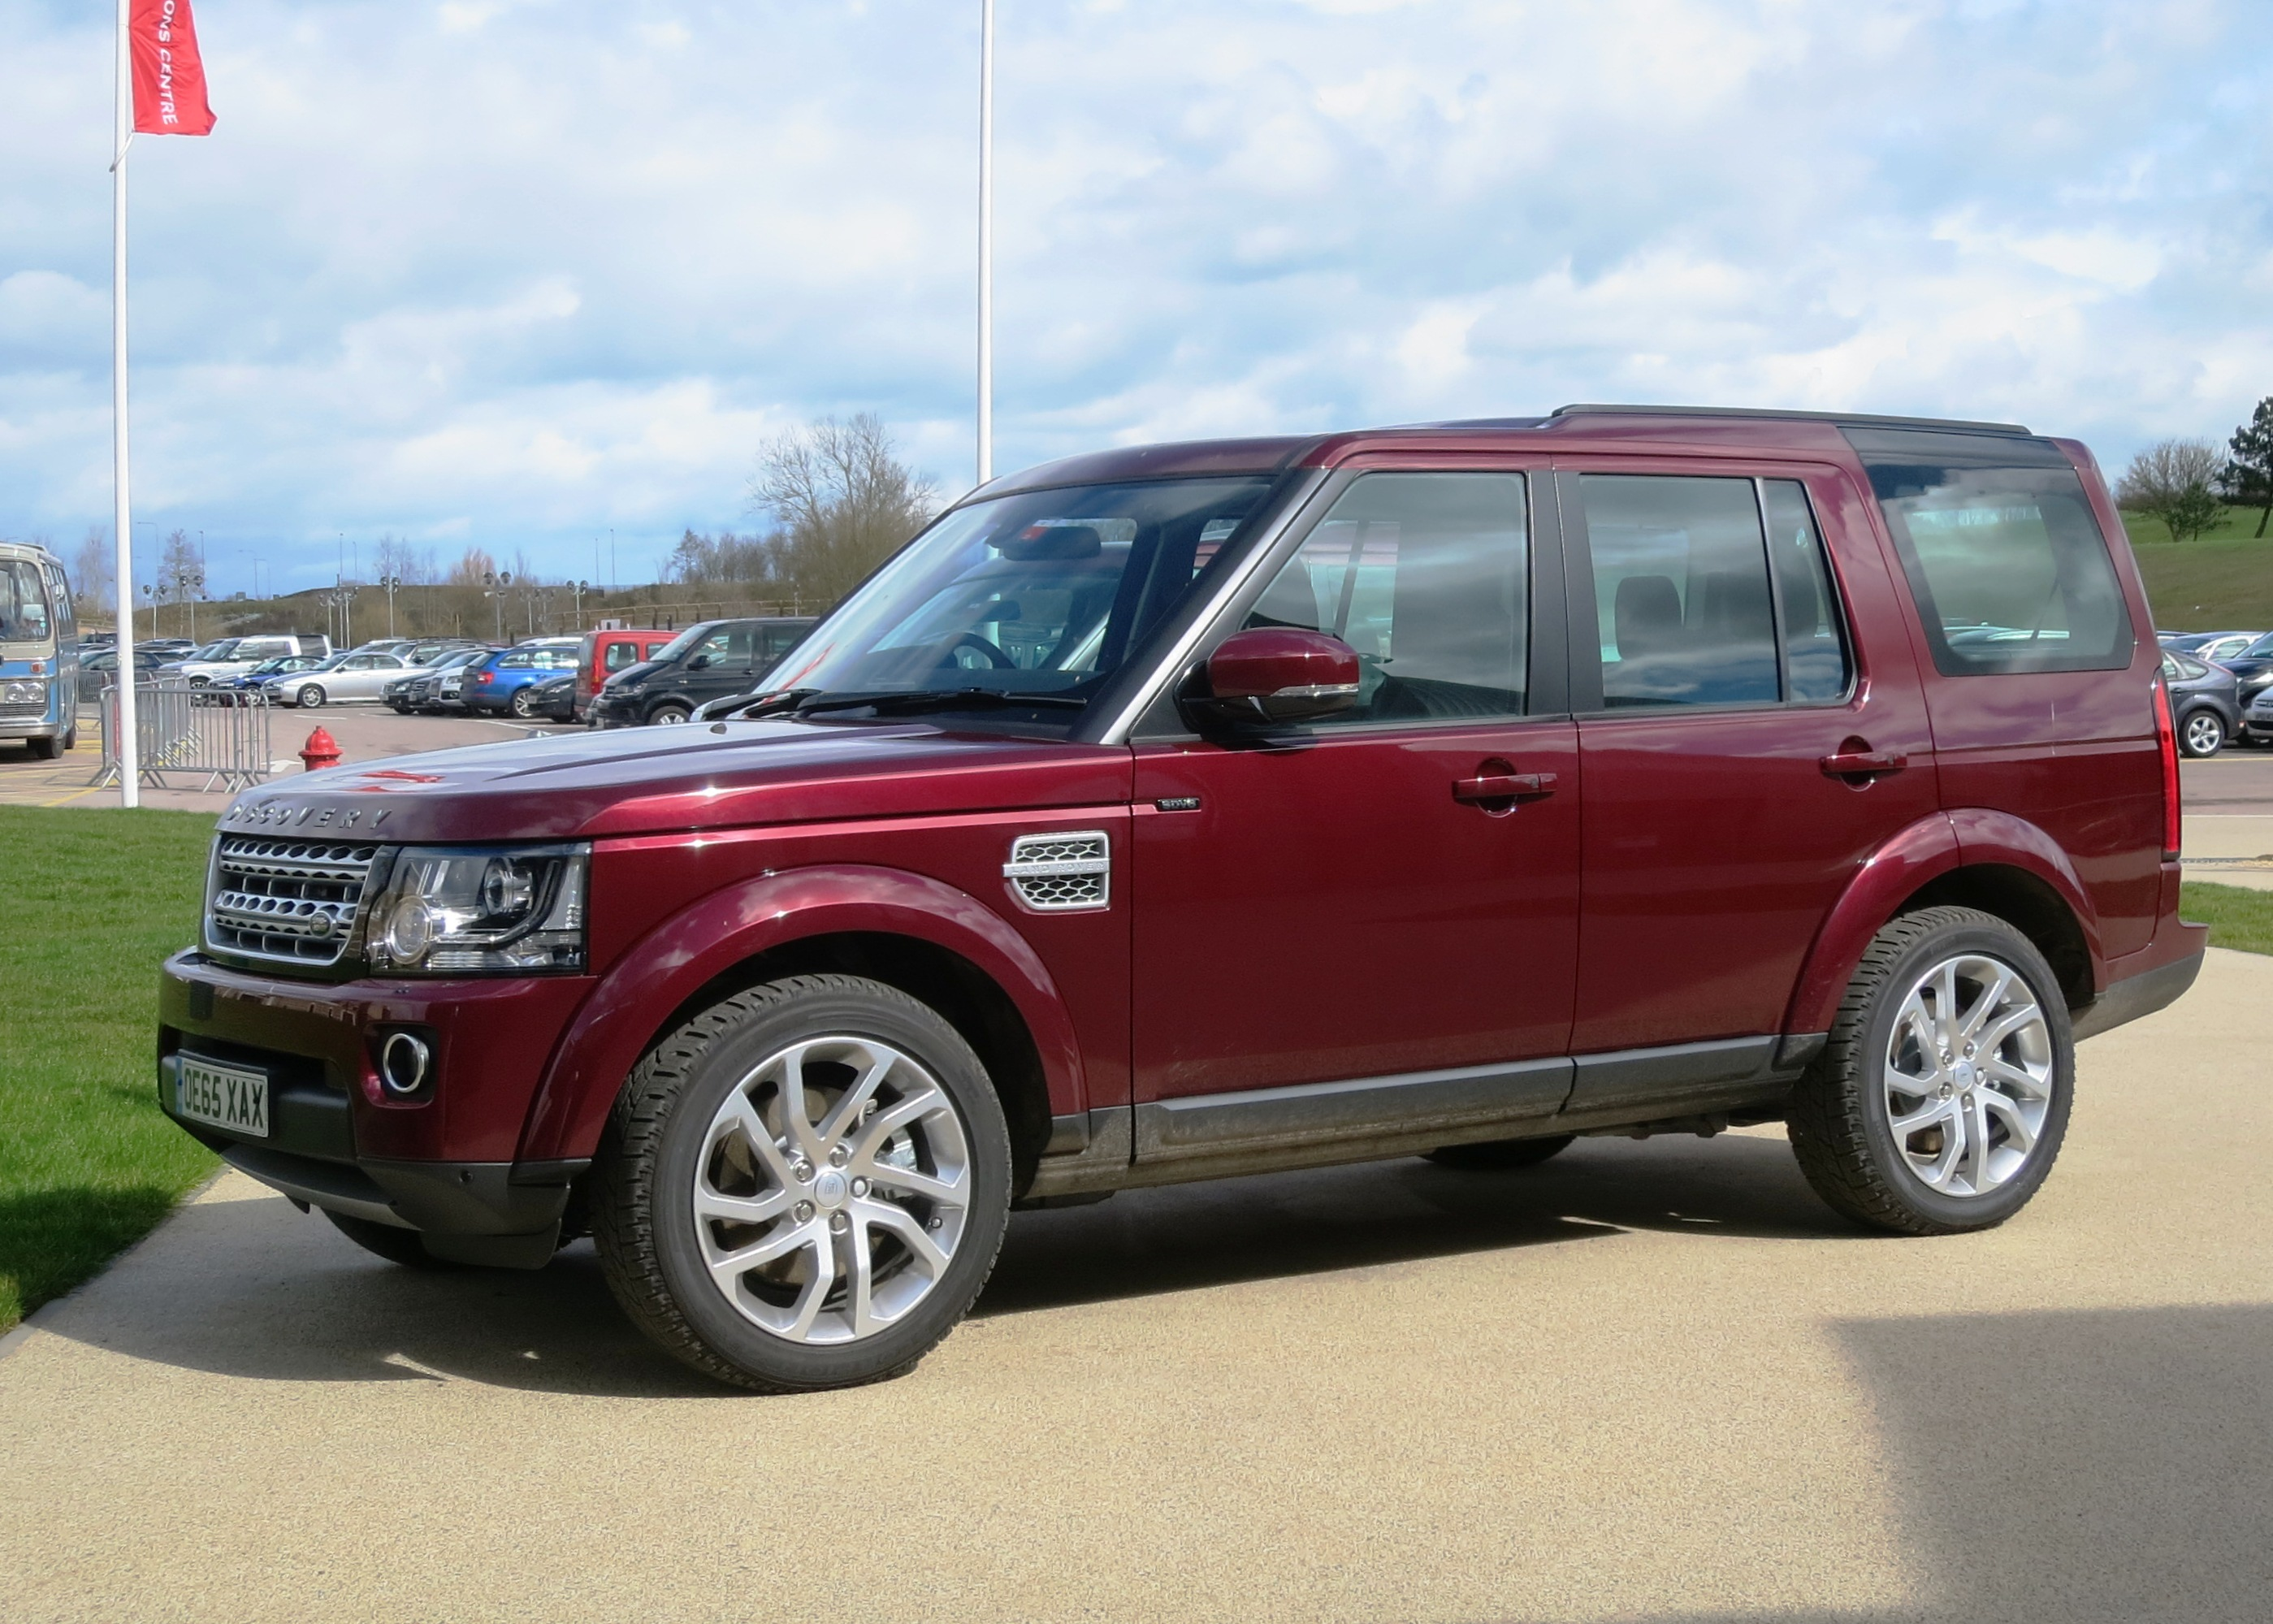 File Land Rover Discovery HSE Diesel registered January 2016